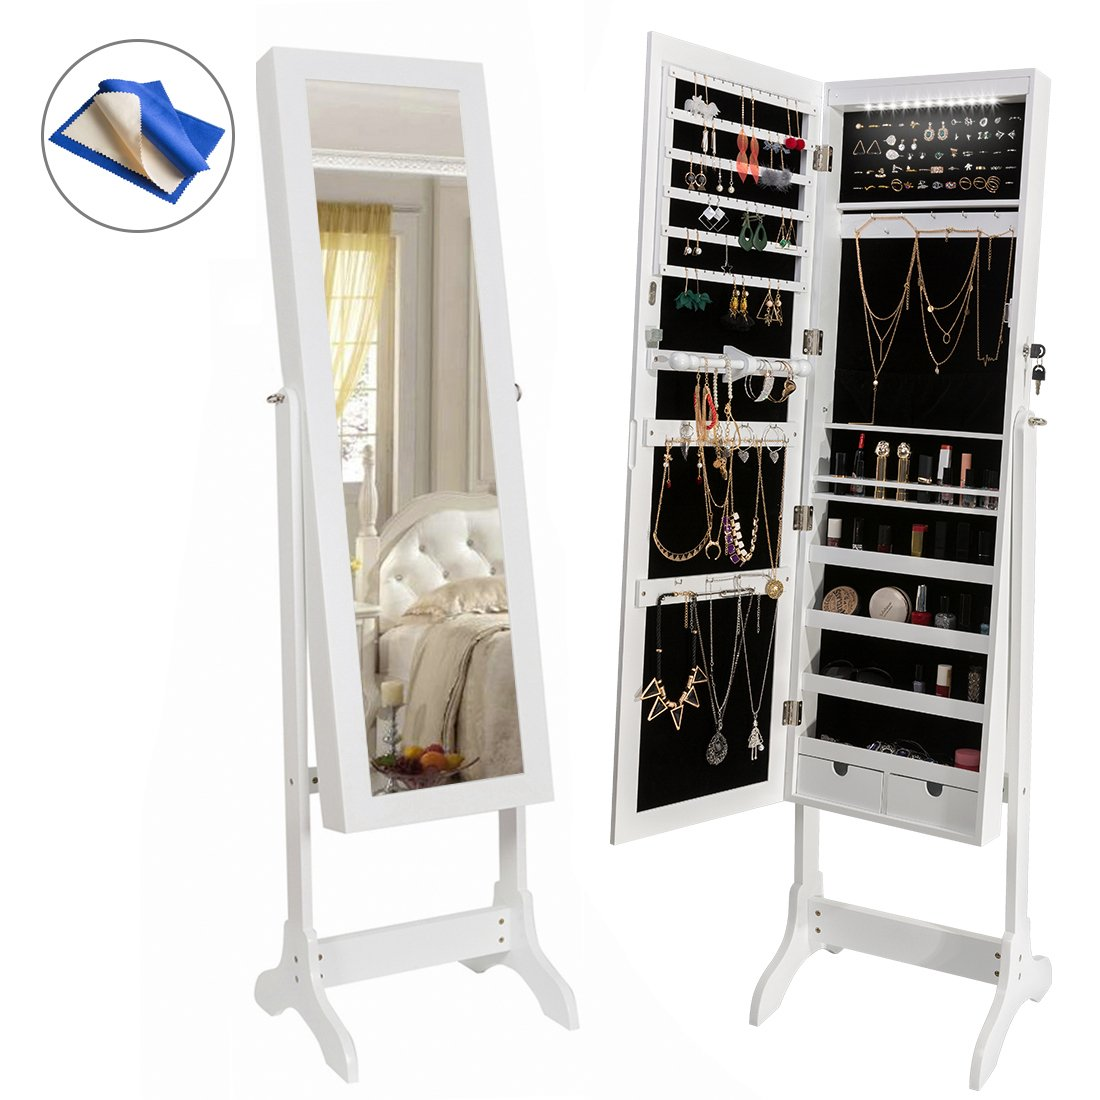 HollyHOME Jewelry Cabinet Lockable Standing Jewelry Armoire with Mirror Storage Organizer with LED Light , 4 Angle Adjustable, White